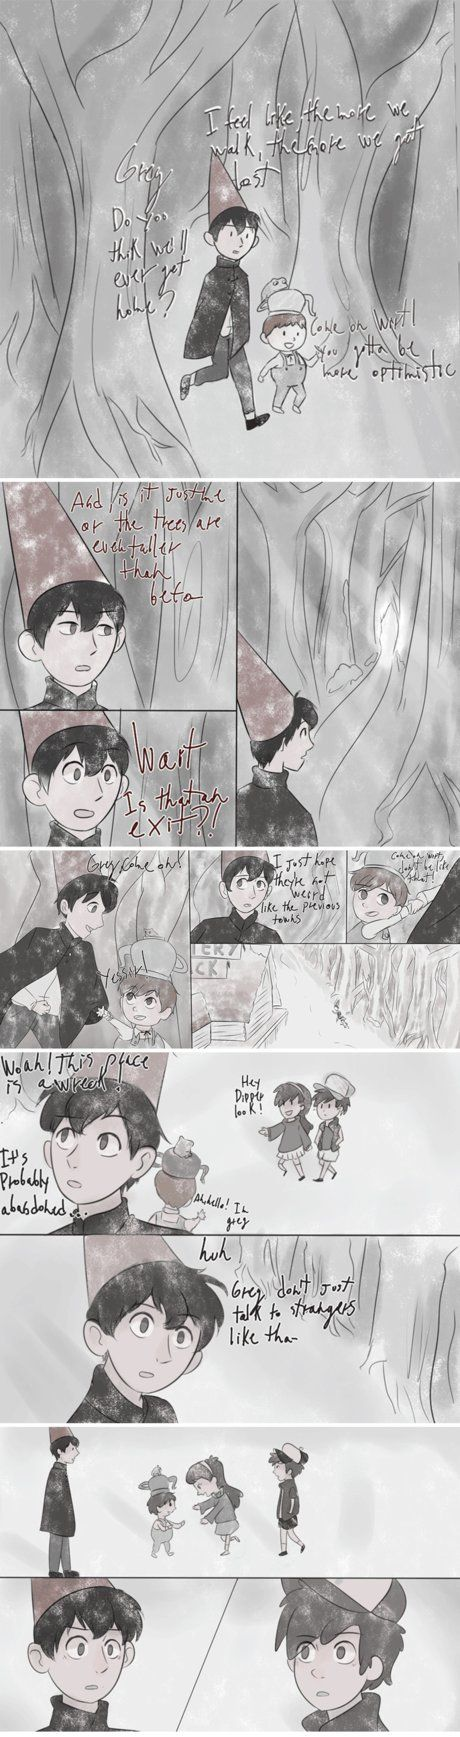 aahhh a comic i made because i loved over the garden wall so so much. And it just reminded me soo much of gf Also in my tumblr! x